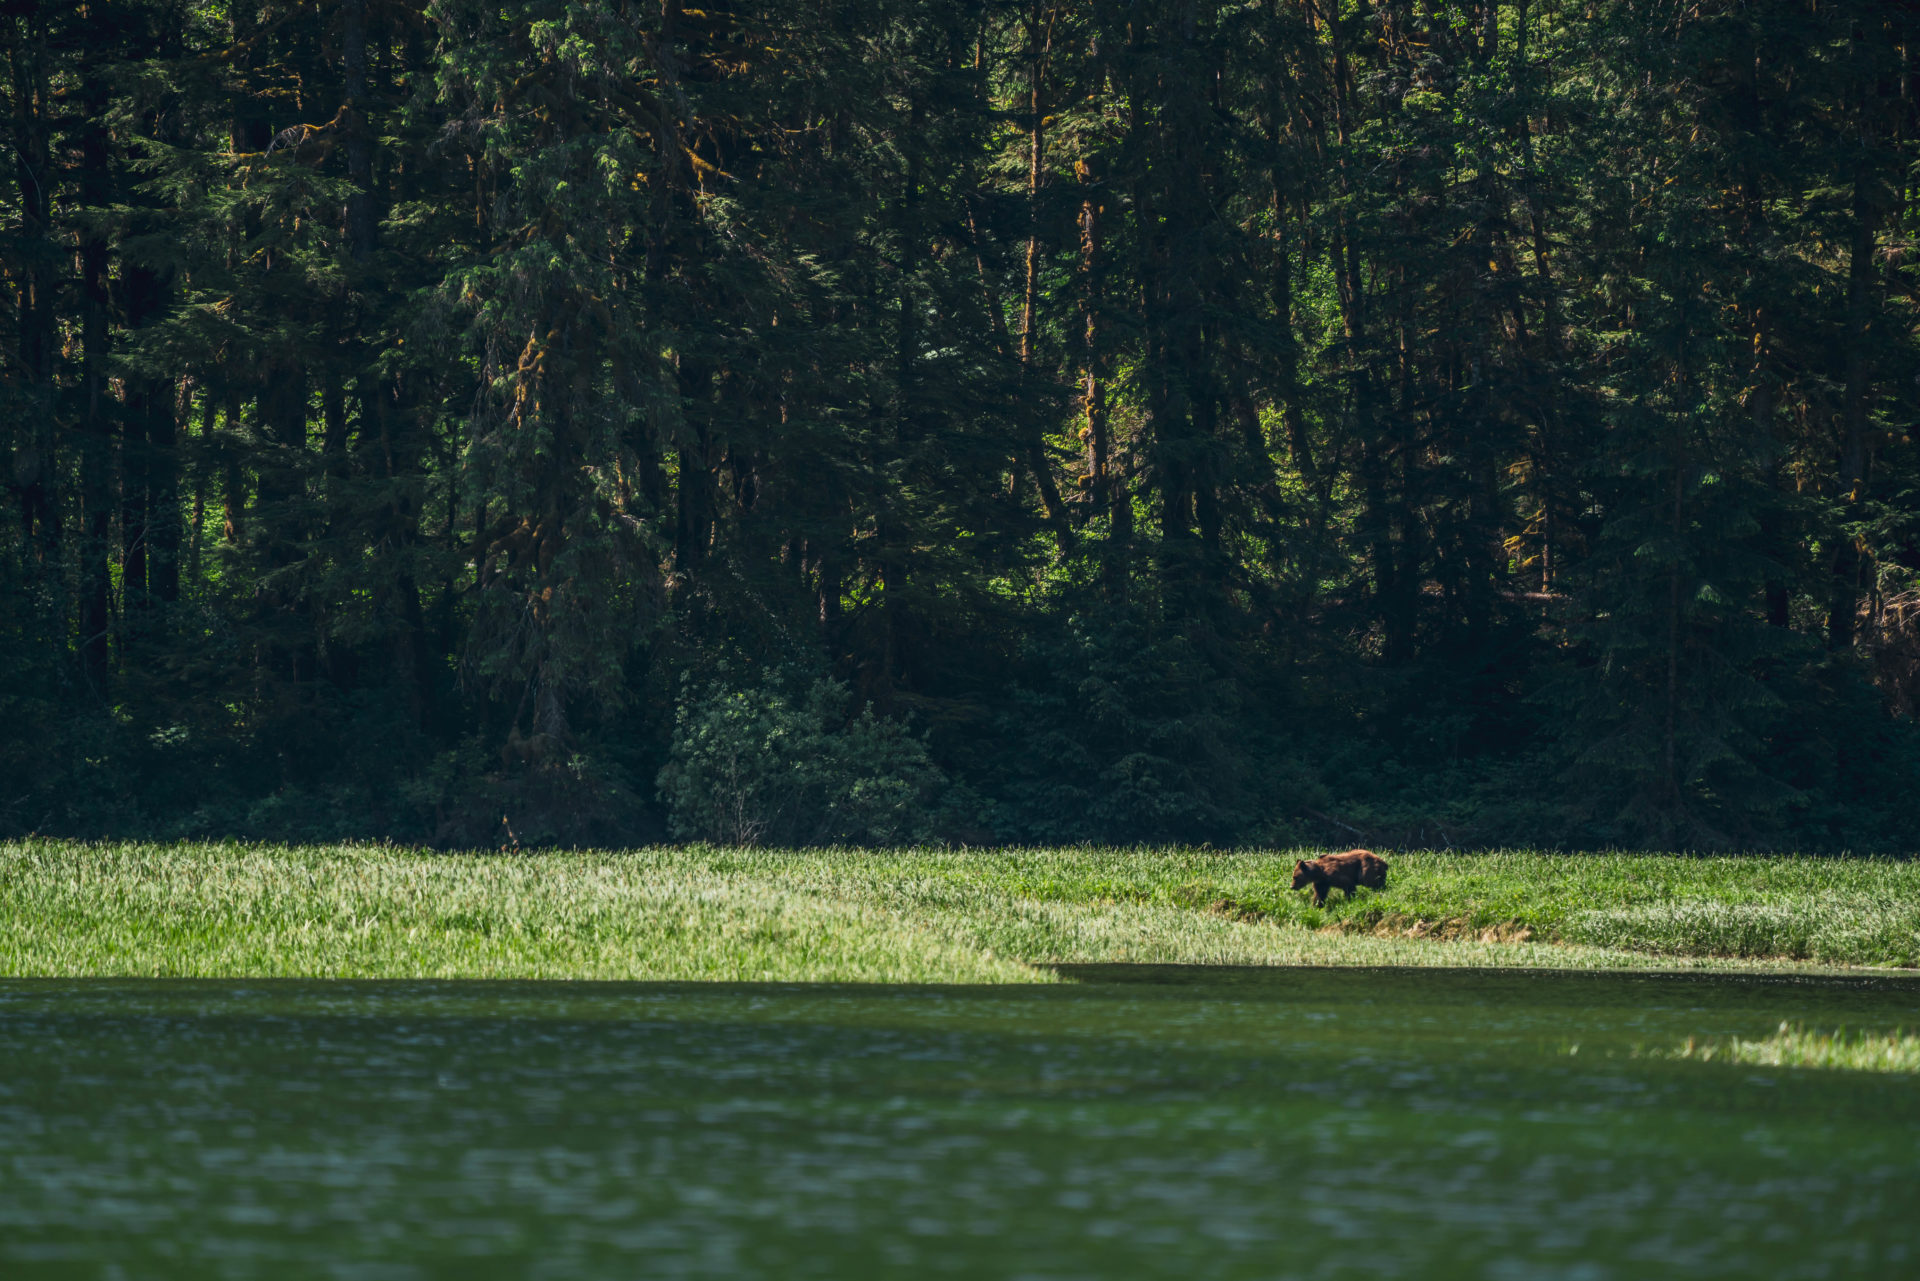 Grizzly bear in Great Bear Rainforest